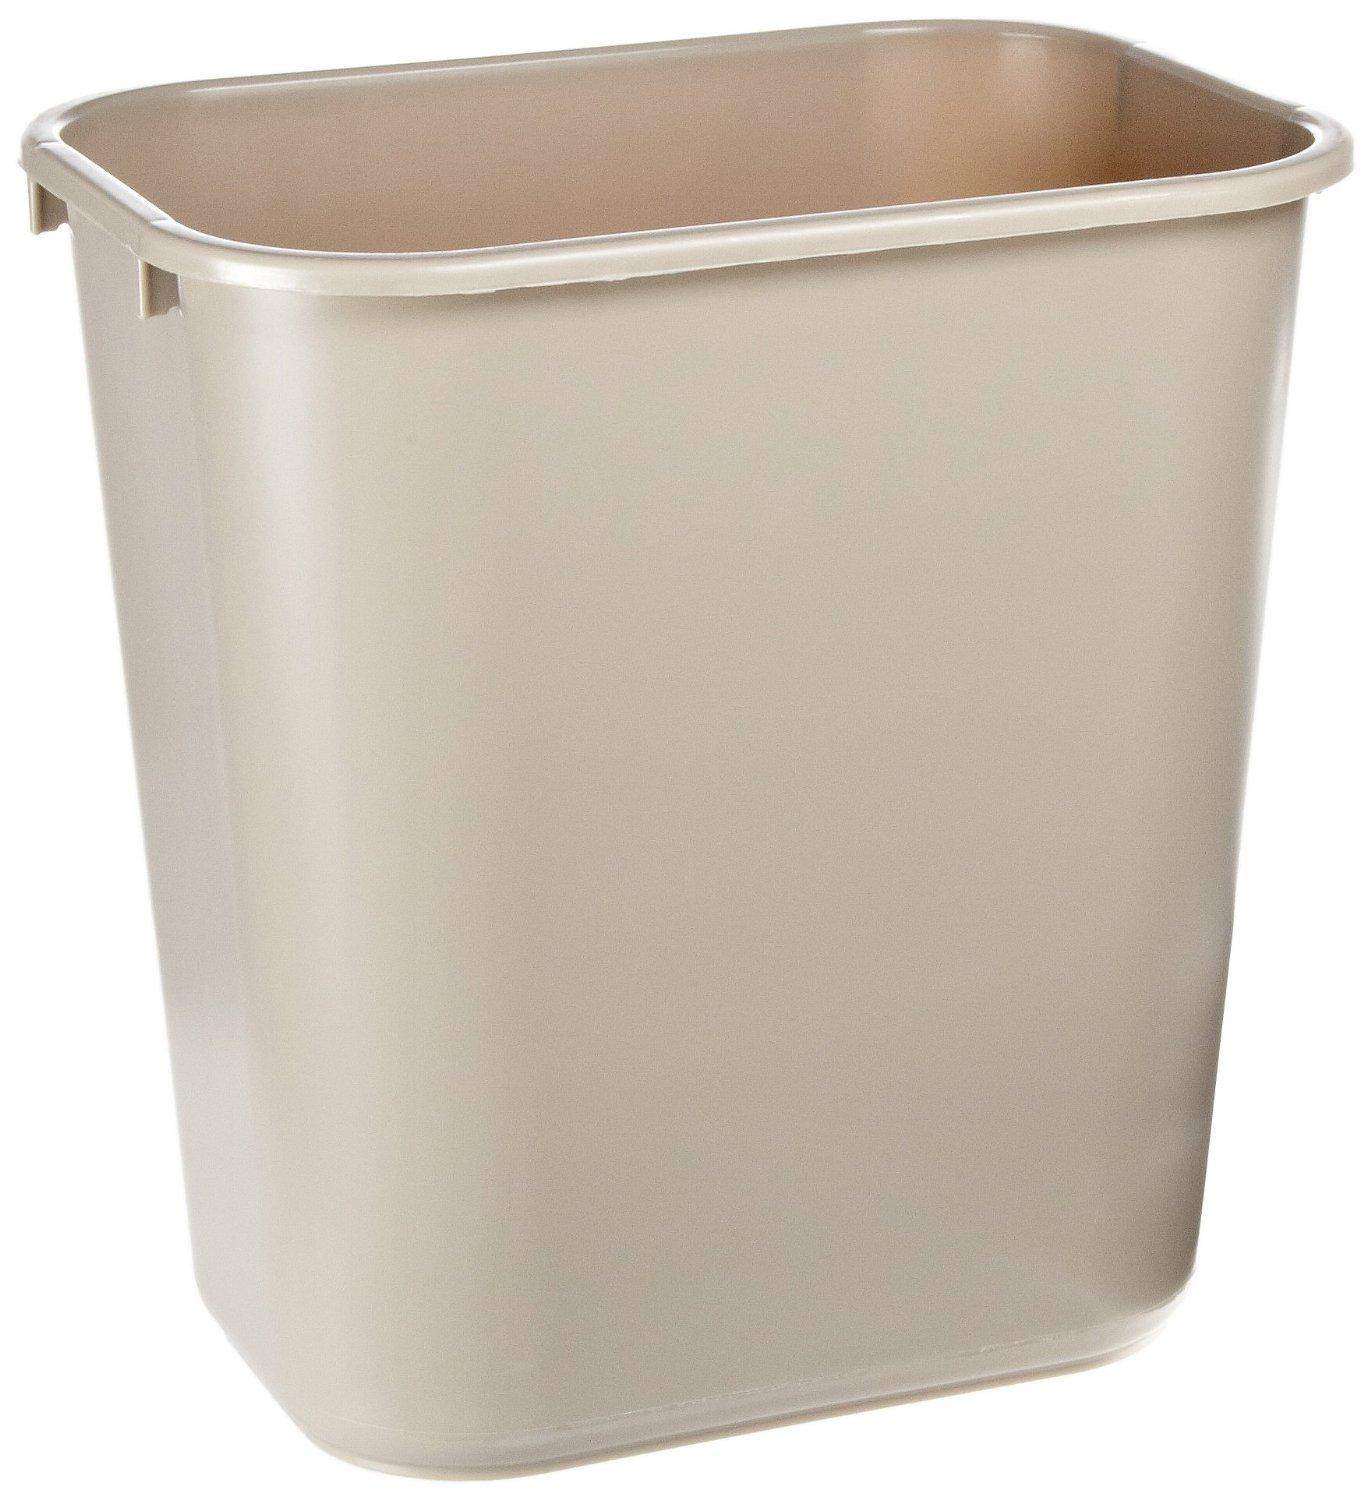 #1 Best seller! Rubbermaid Commercial Plastic 7-Gallon Trash Can, Beige